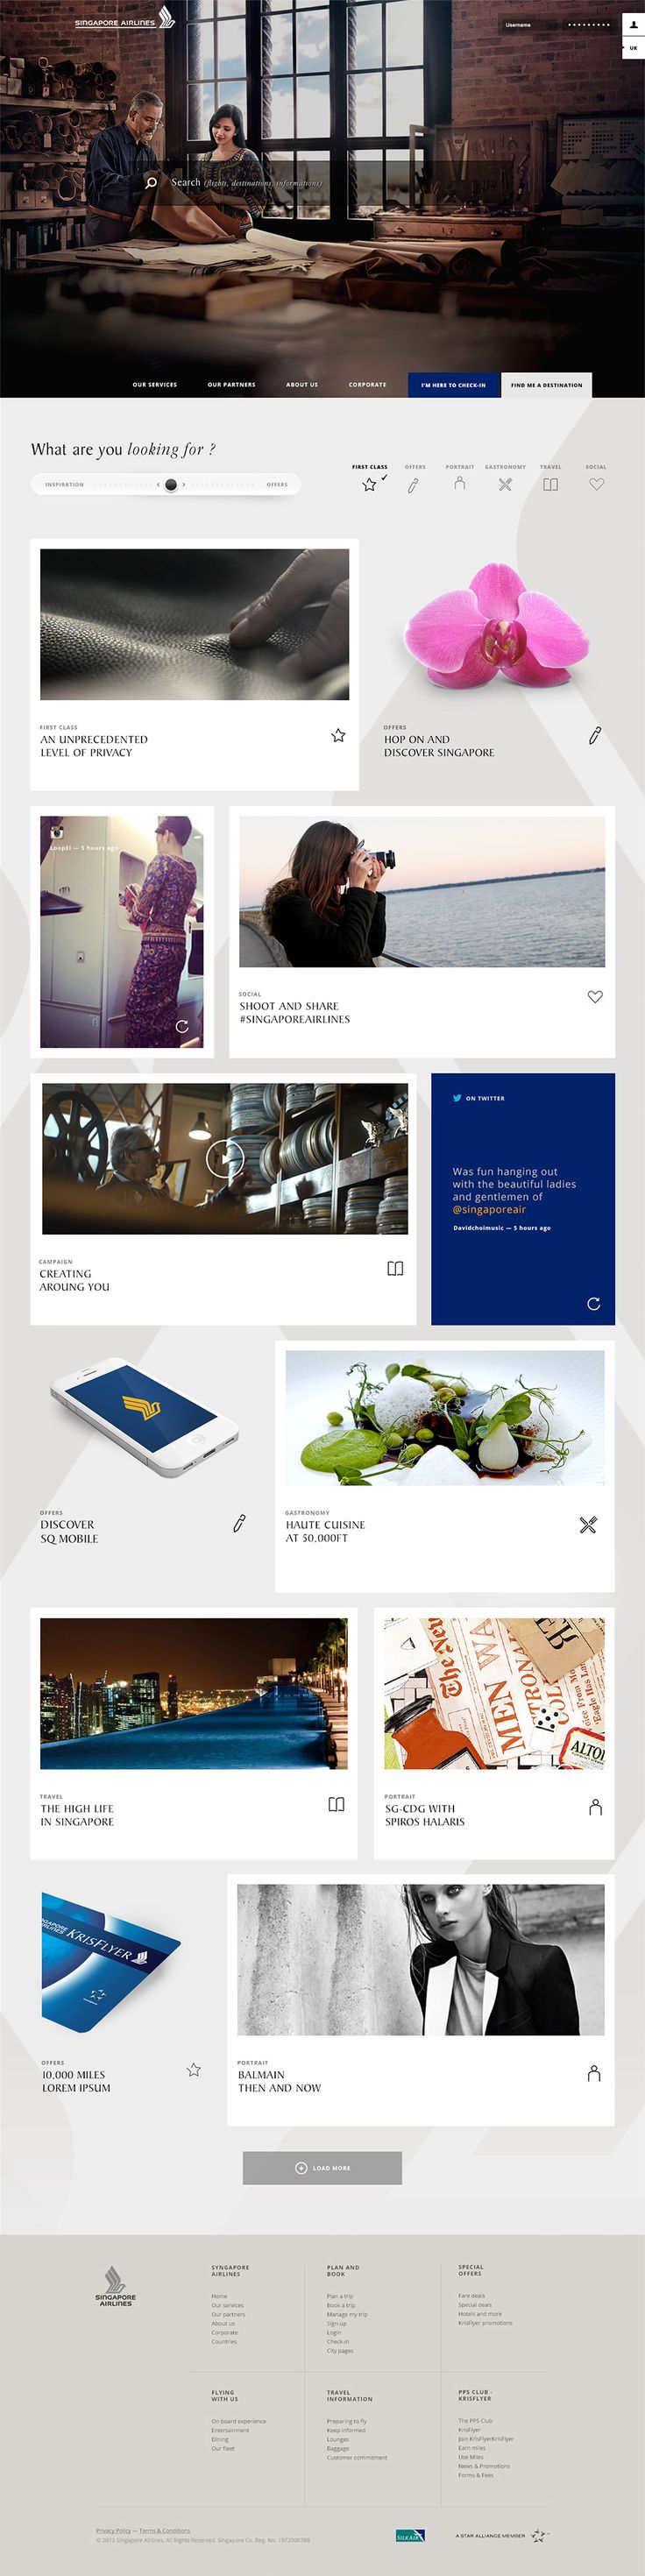 We think the stunning photography used on Singapore Airlines' really sets this website design apart from the rest! #webdesign #photography